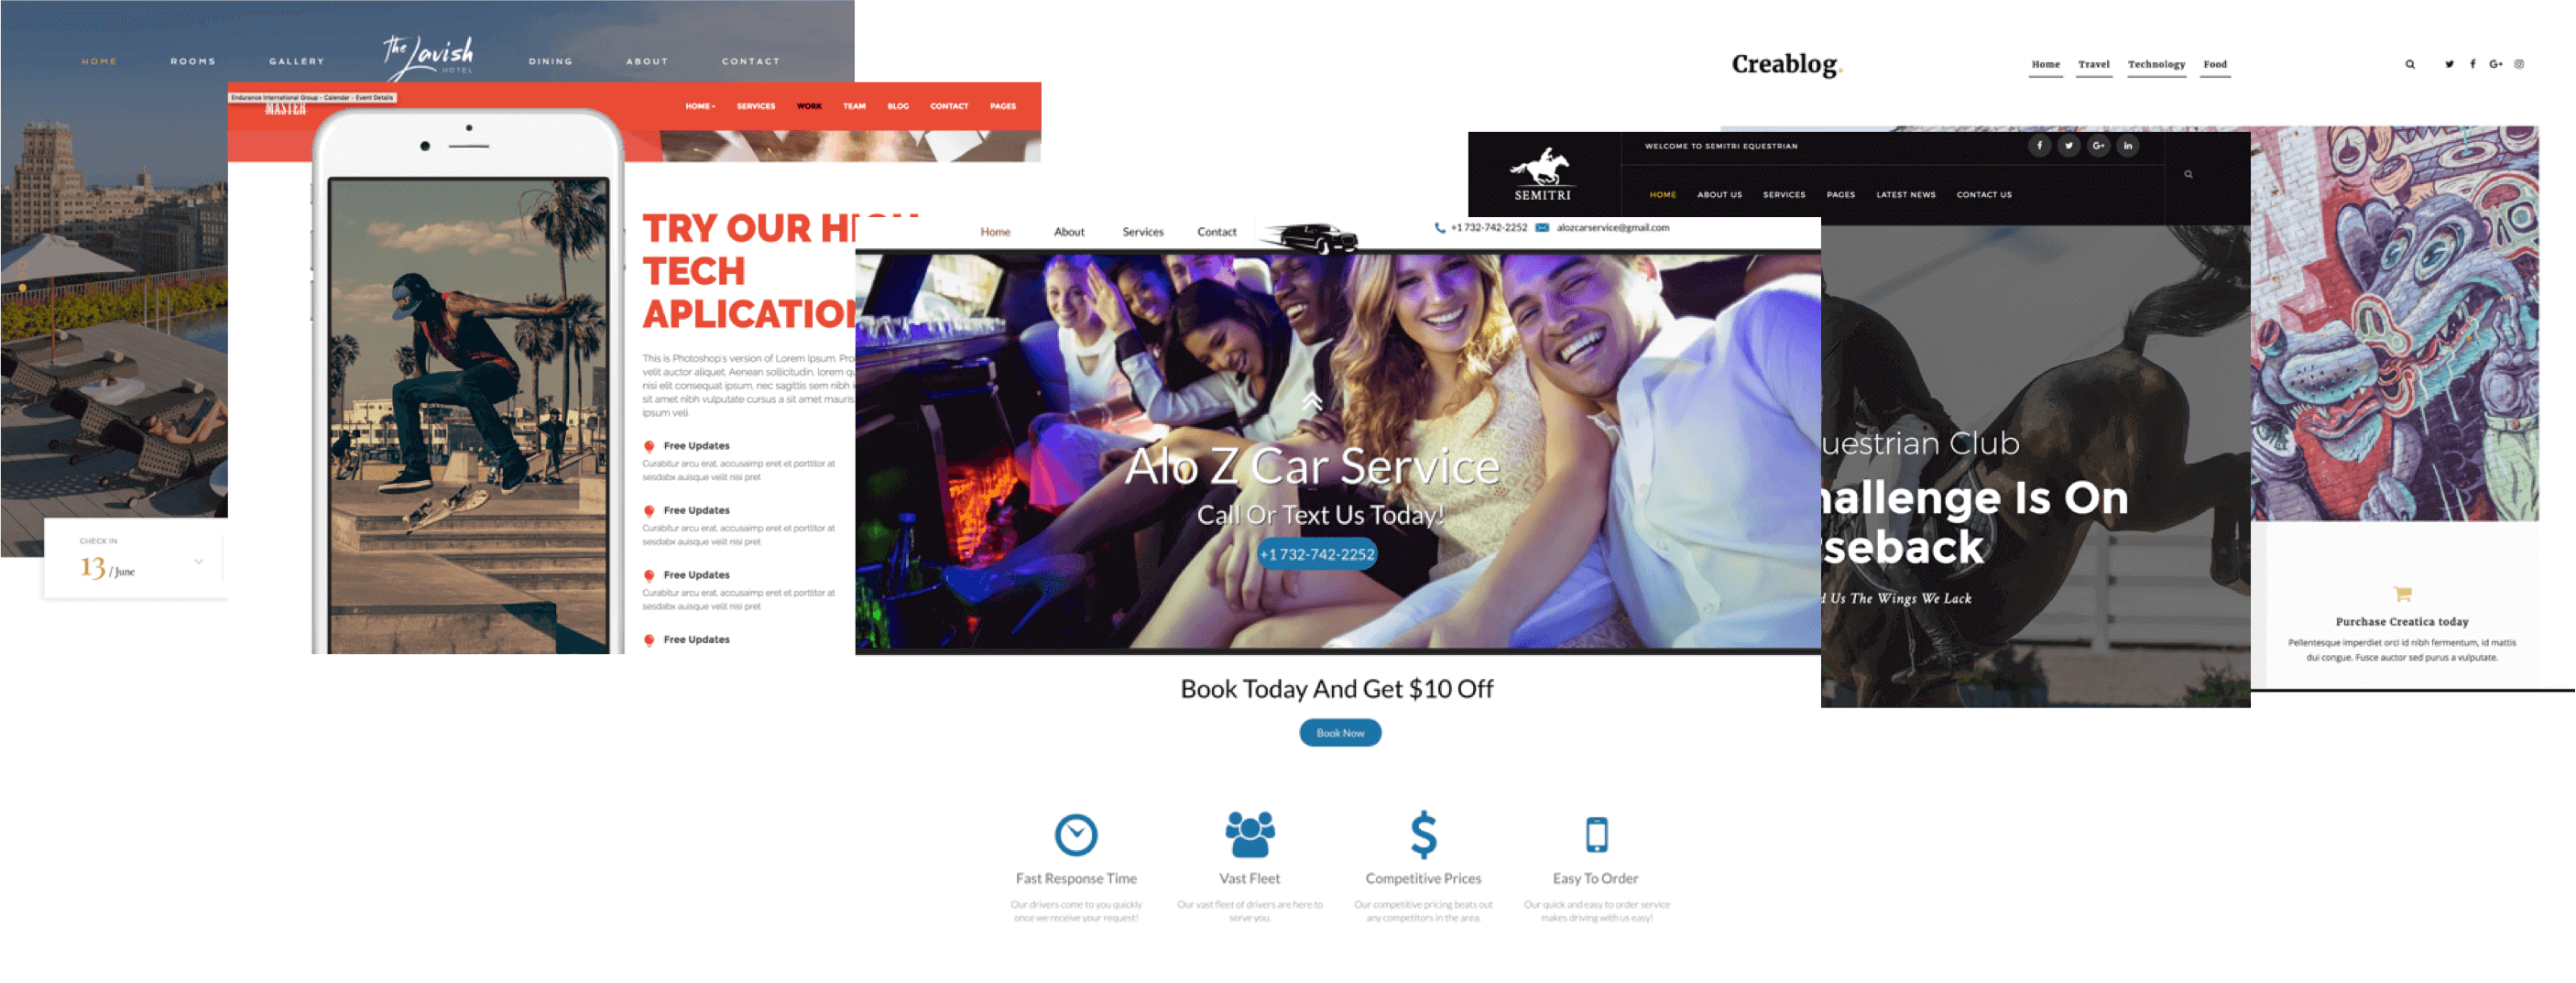 Professional website design services hostgator for Product and service design